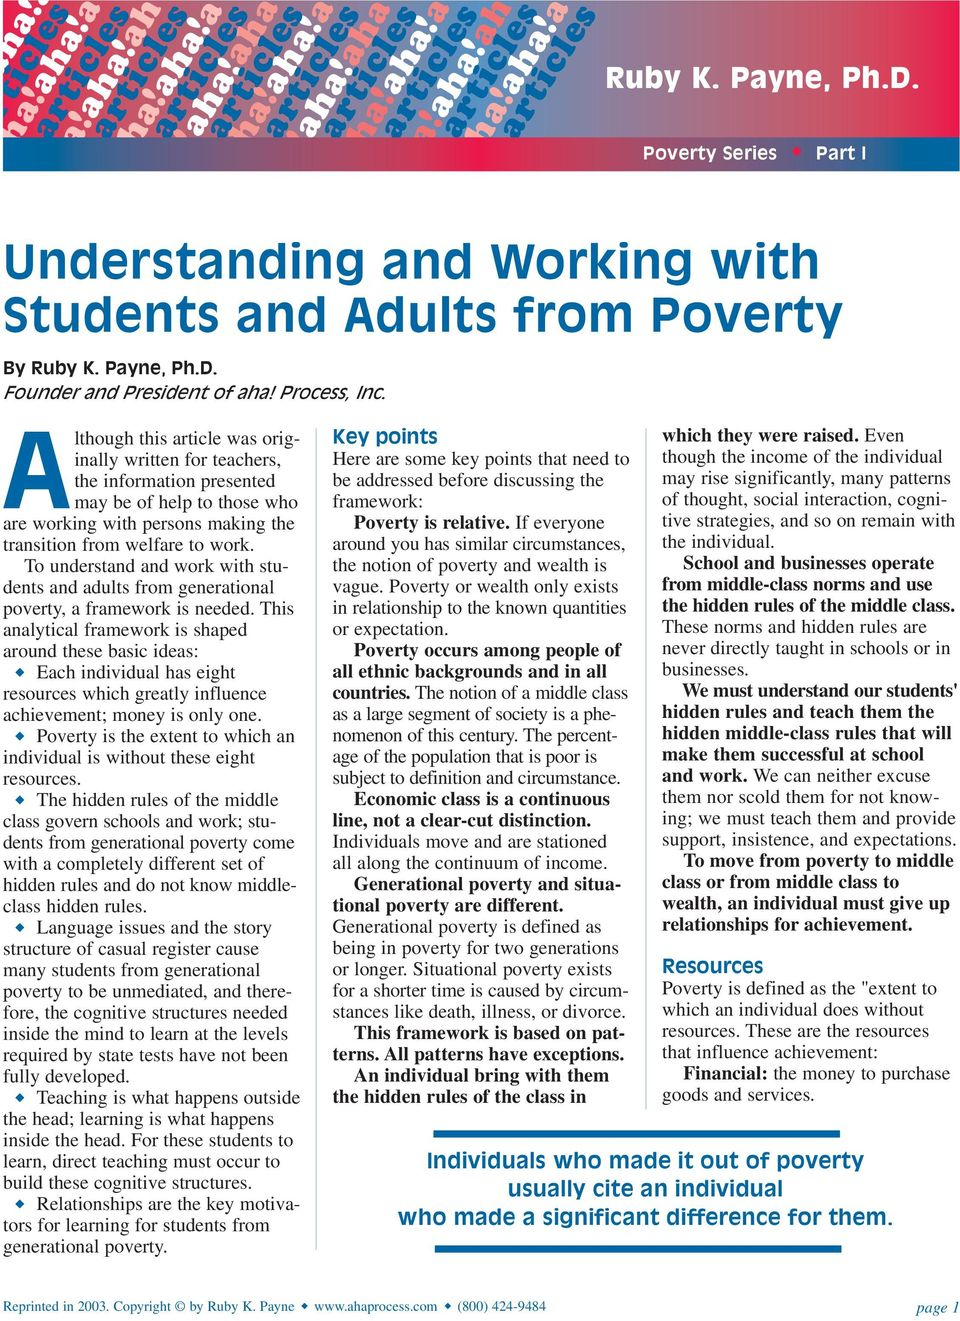 Poverty Series Part I Although this article was originally written for teachers, the information presented may be of help to those who are working with persons making the transition from welfare to